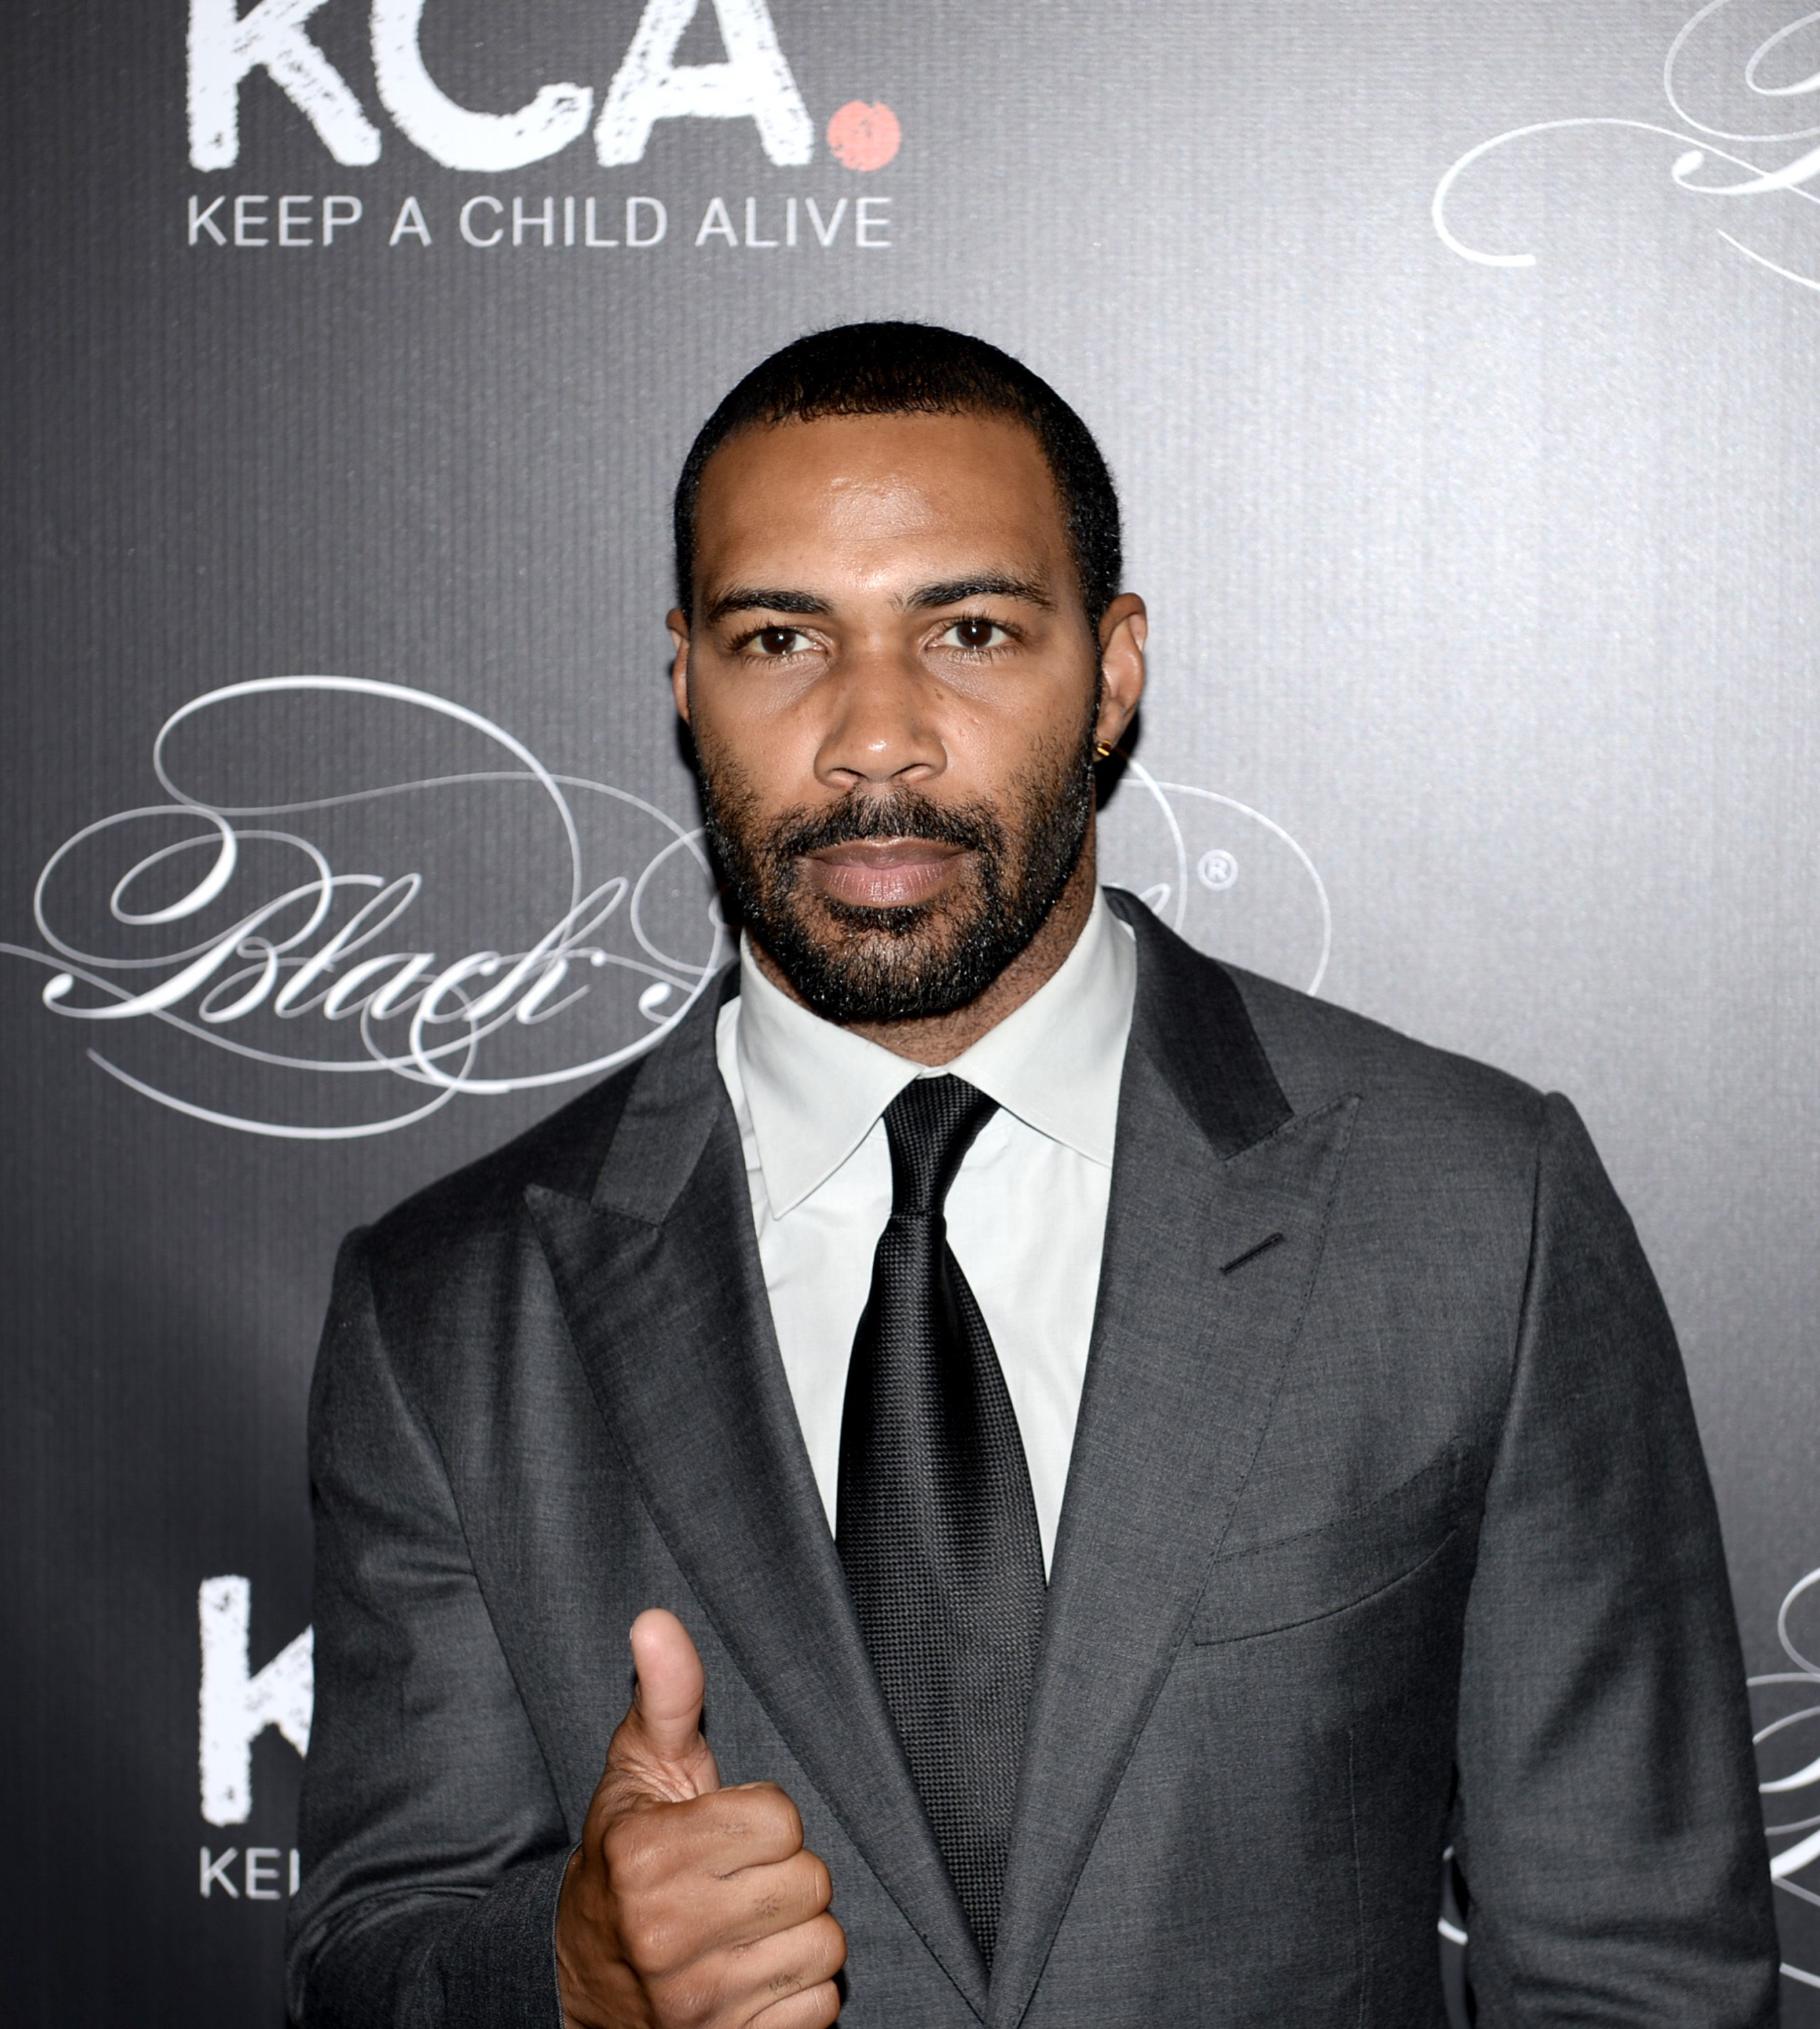 Omari Hardwick at the Keep a Child Alive's 13th annual Black Ball in New York City in 2016.   Photo: Getty Images